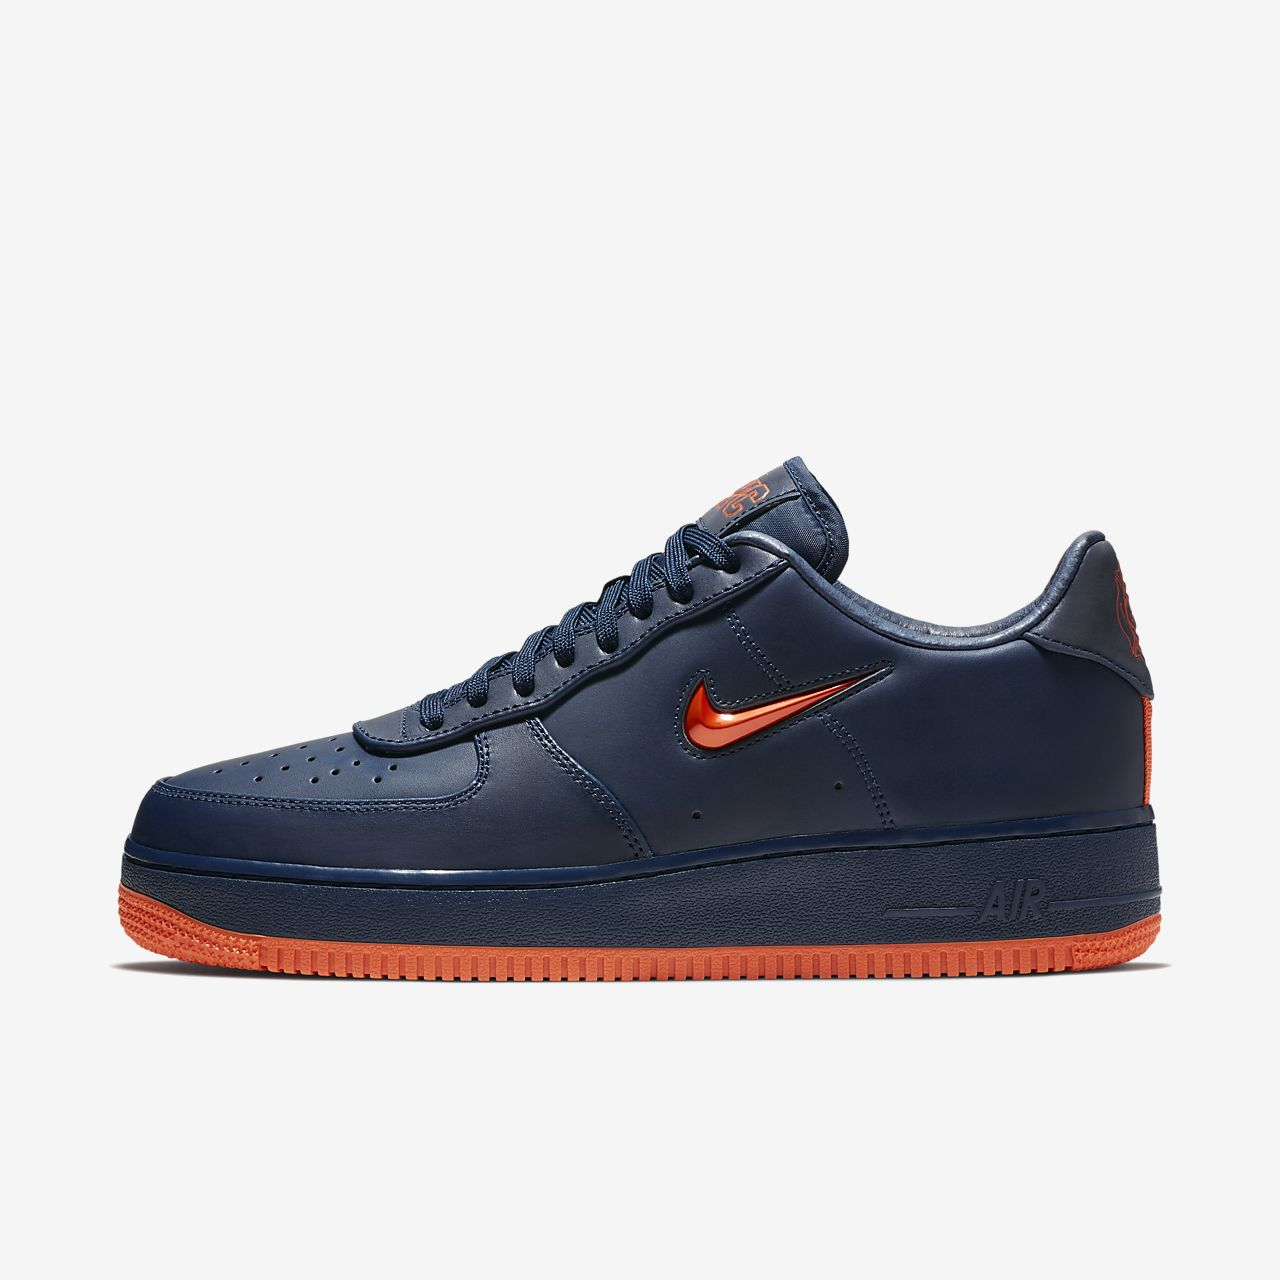 buy online 617ad 1ecb5 Nike Air Force 1 Low Premium